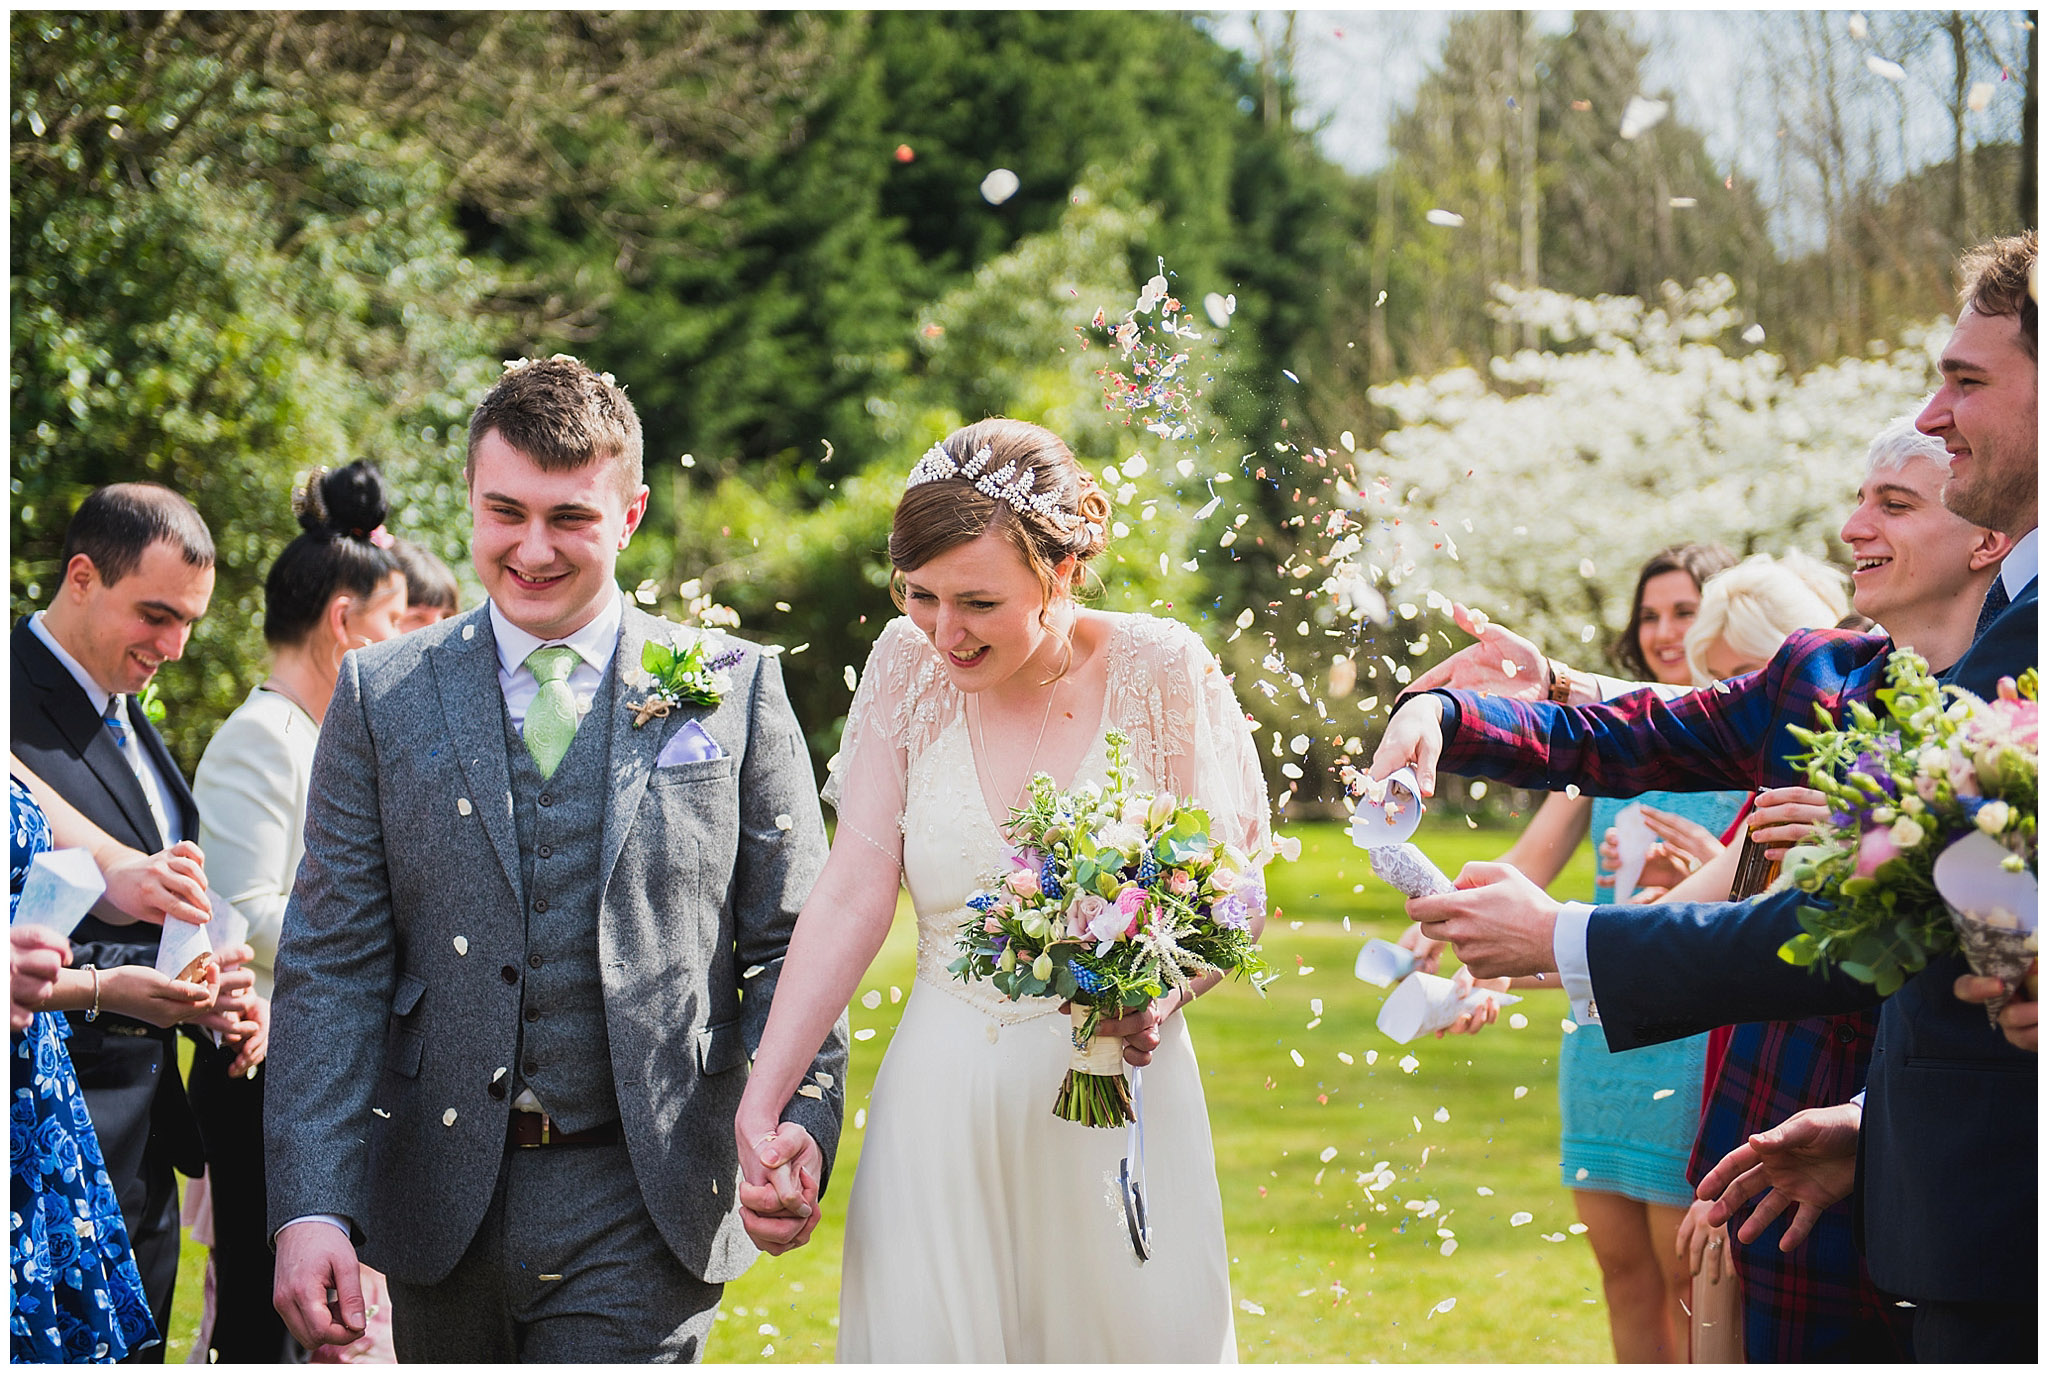 Sarah-&-Dan-The-Old-Vicarage-Wedding-Venue-Dorset-Photographer-25